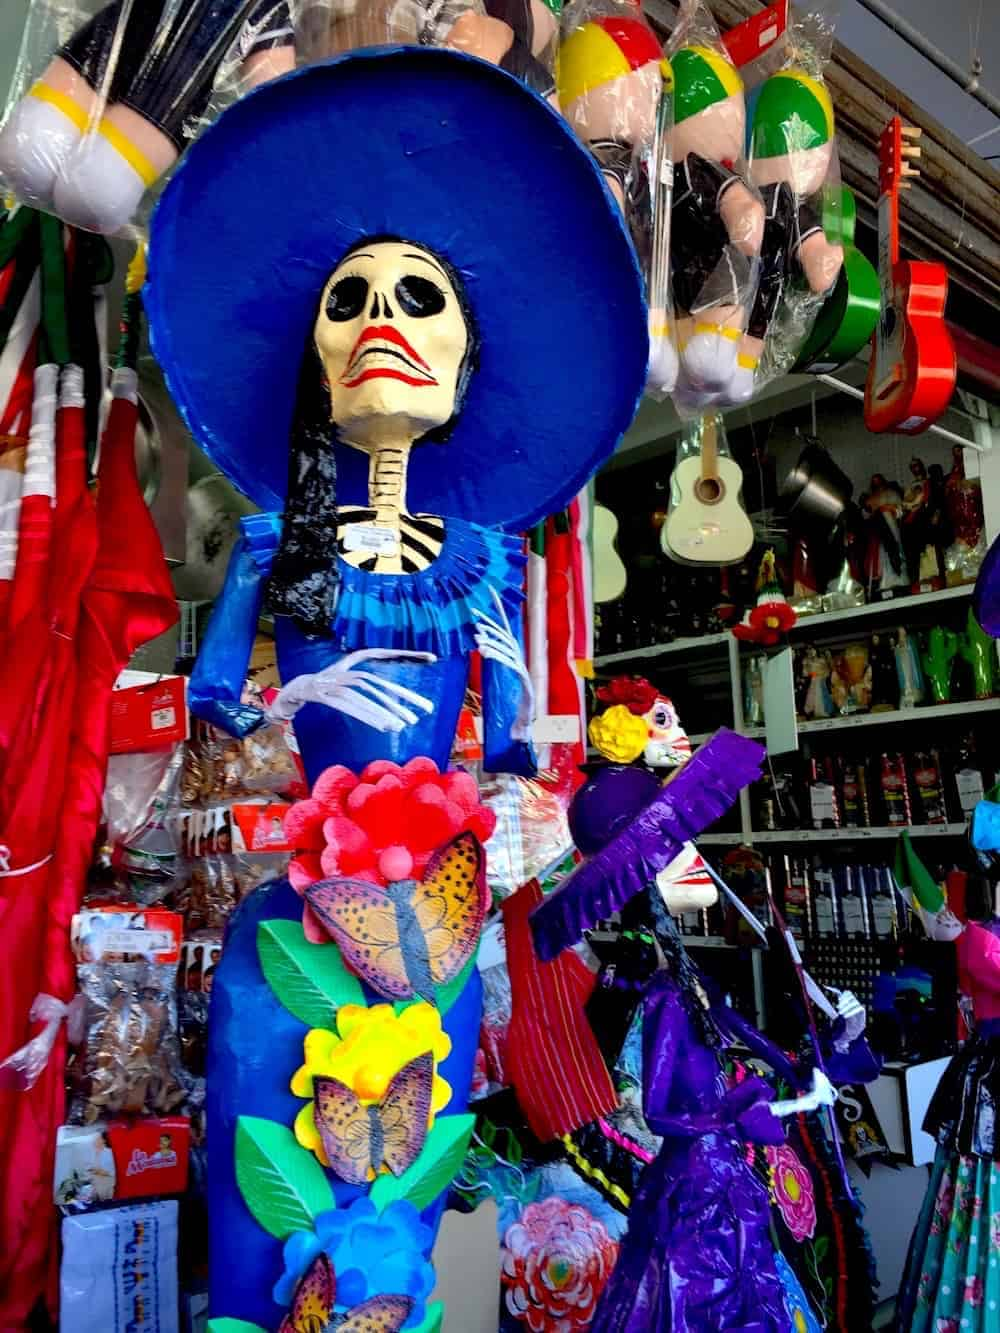 A stature of La Catrina wearing a blue hat and a blue dress.